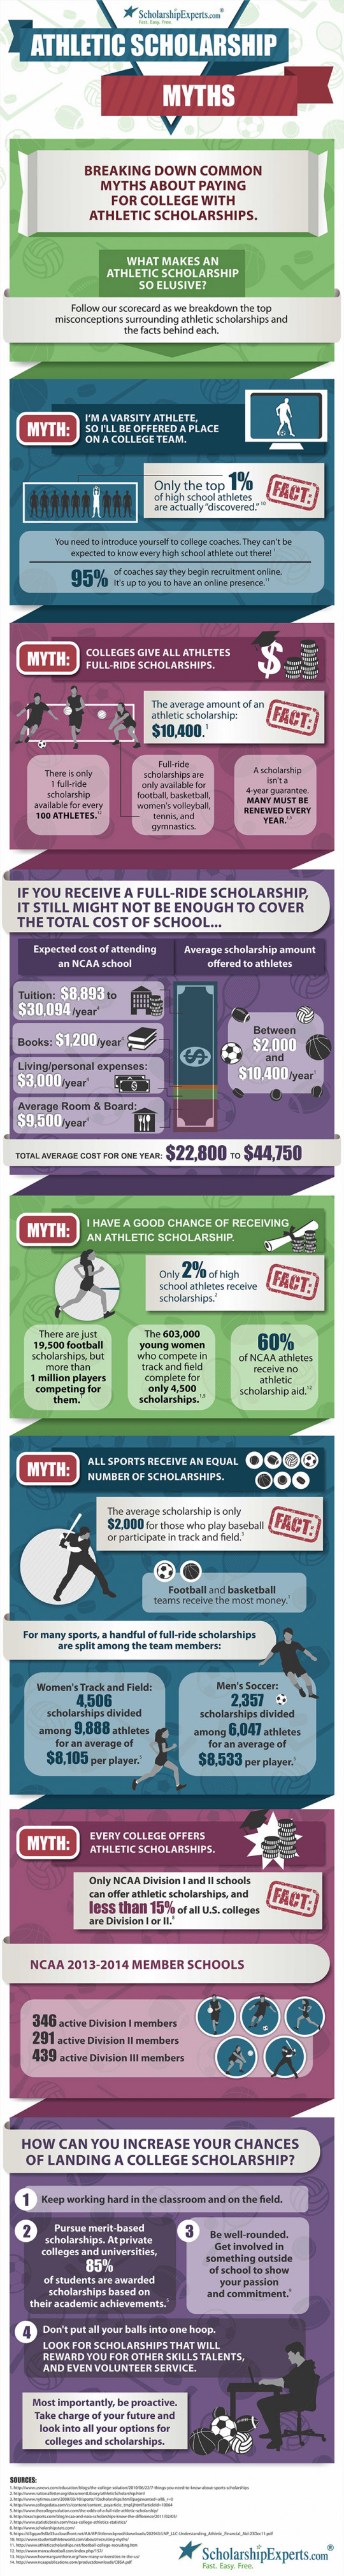 Athletic Scholarship Myths